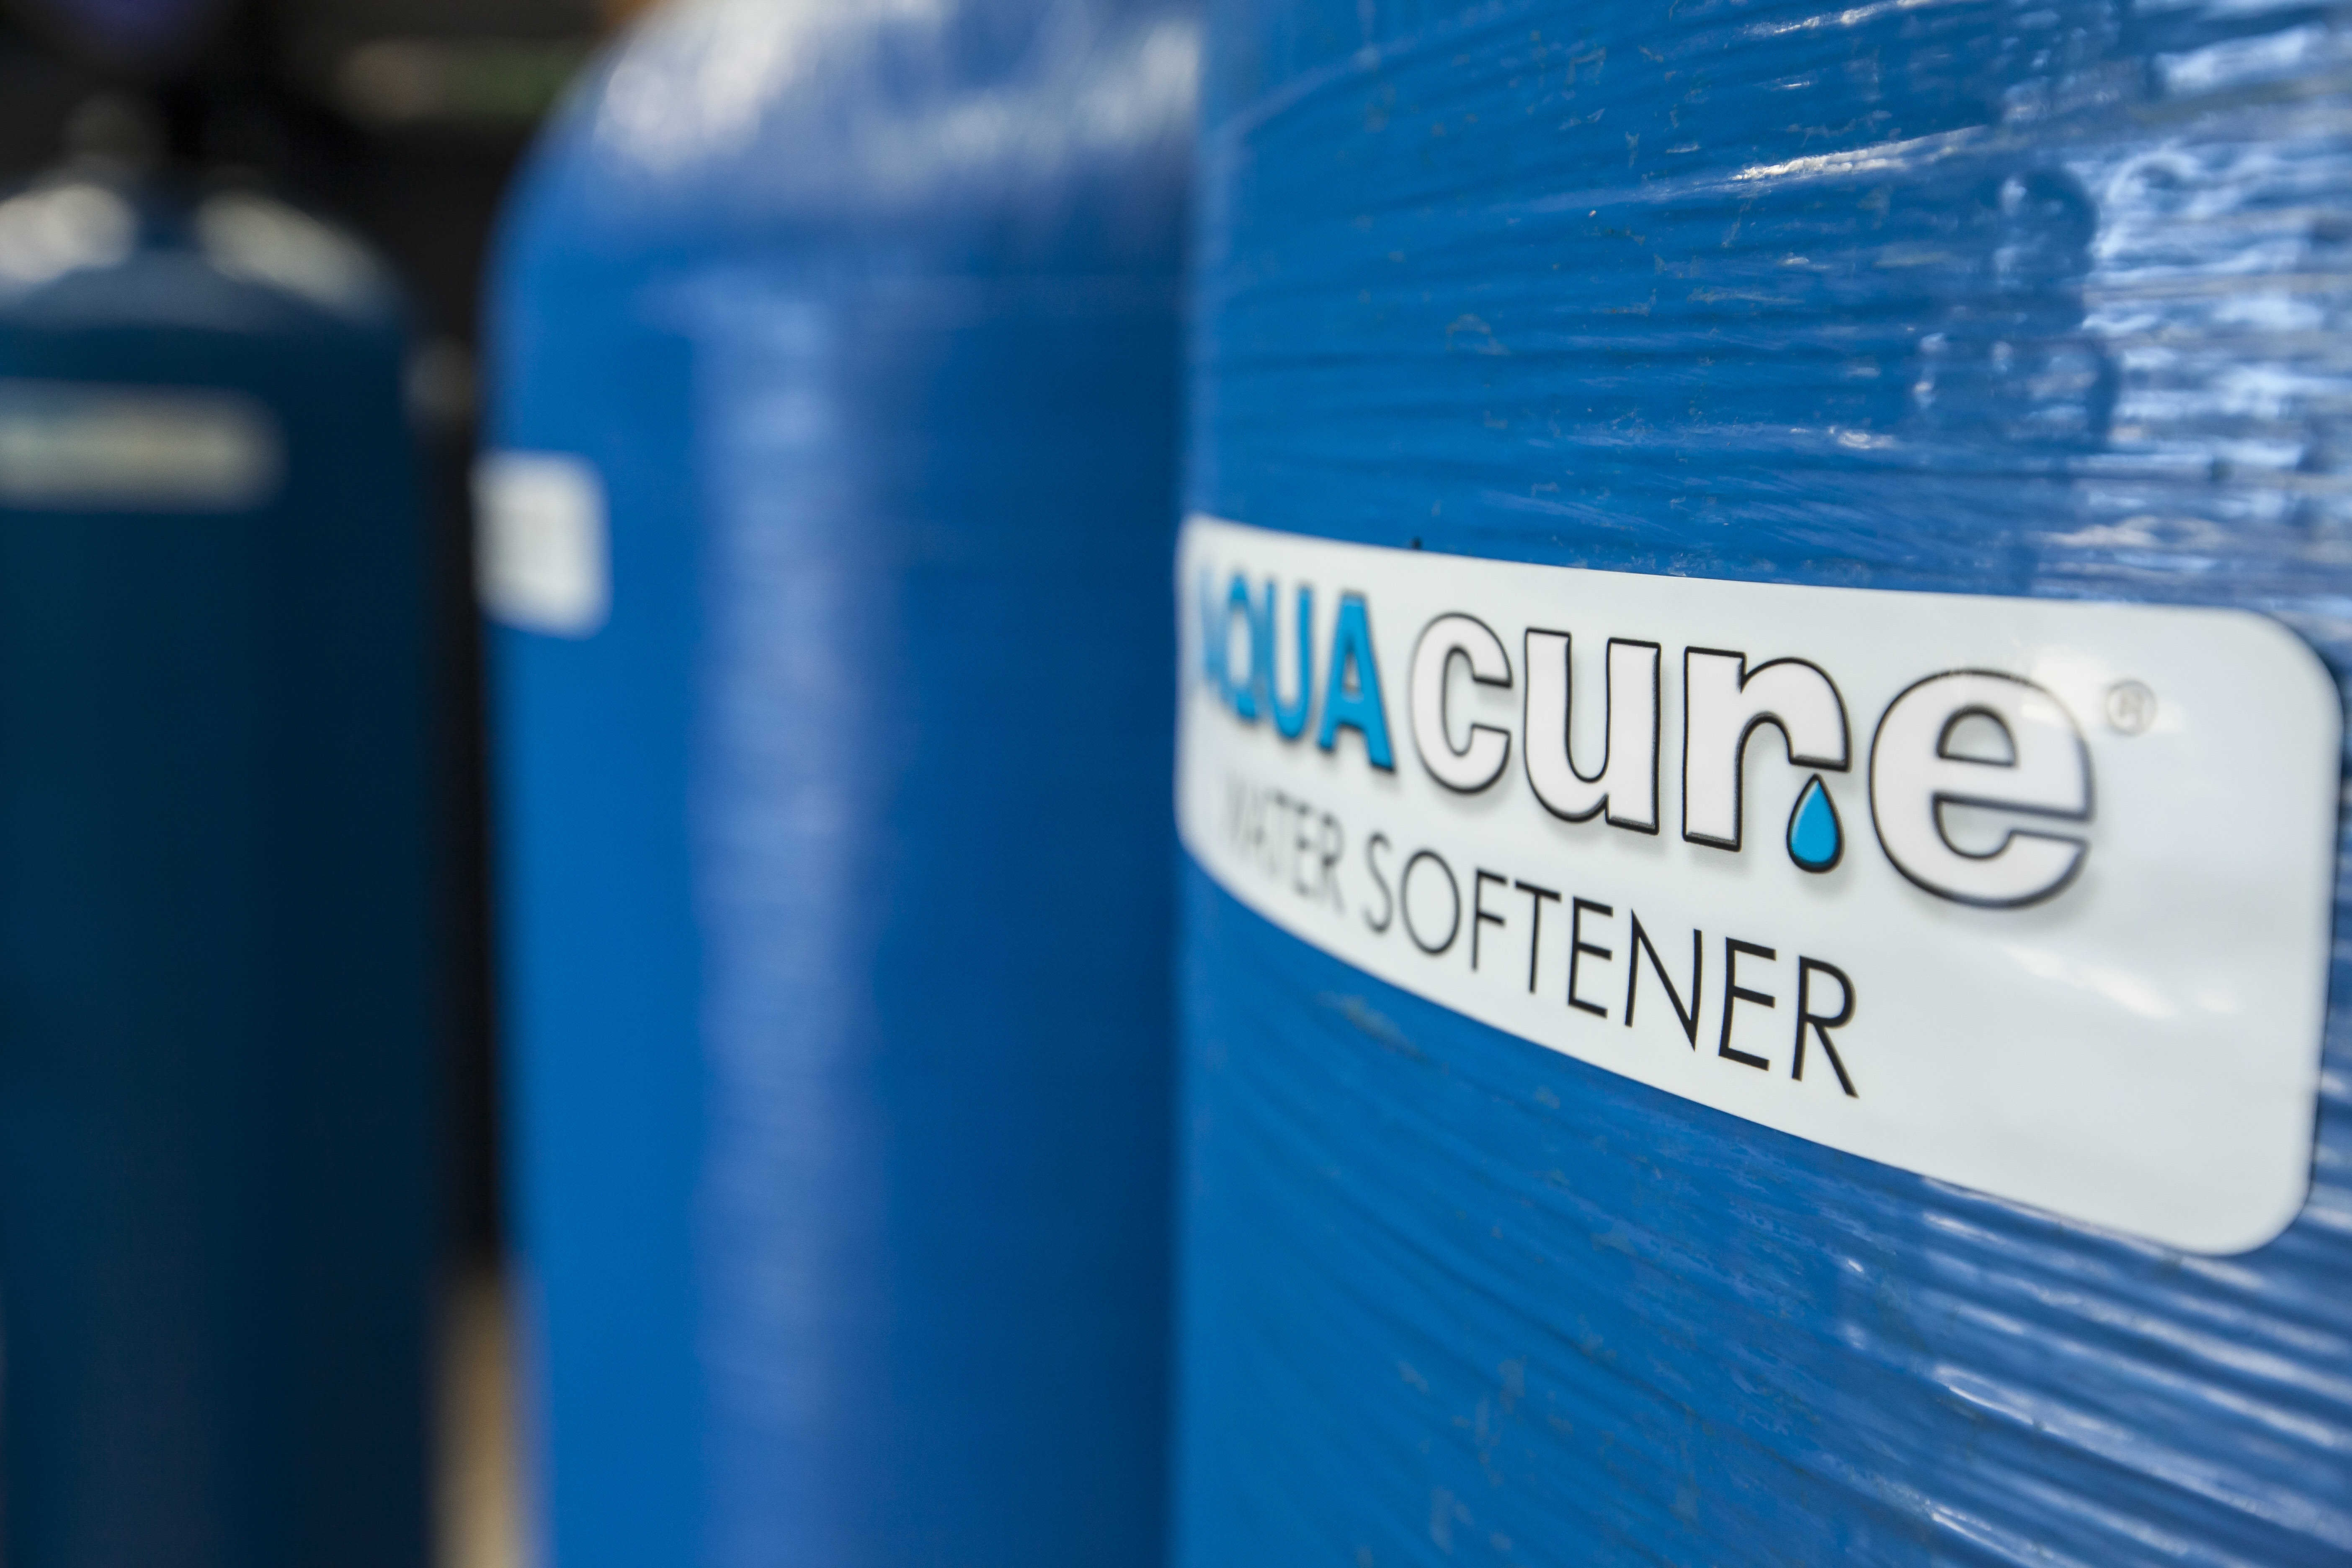 Water Softening Aquacure Water Treatment